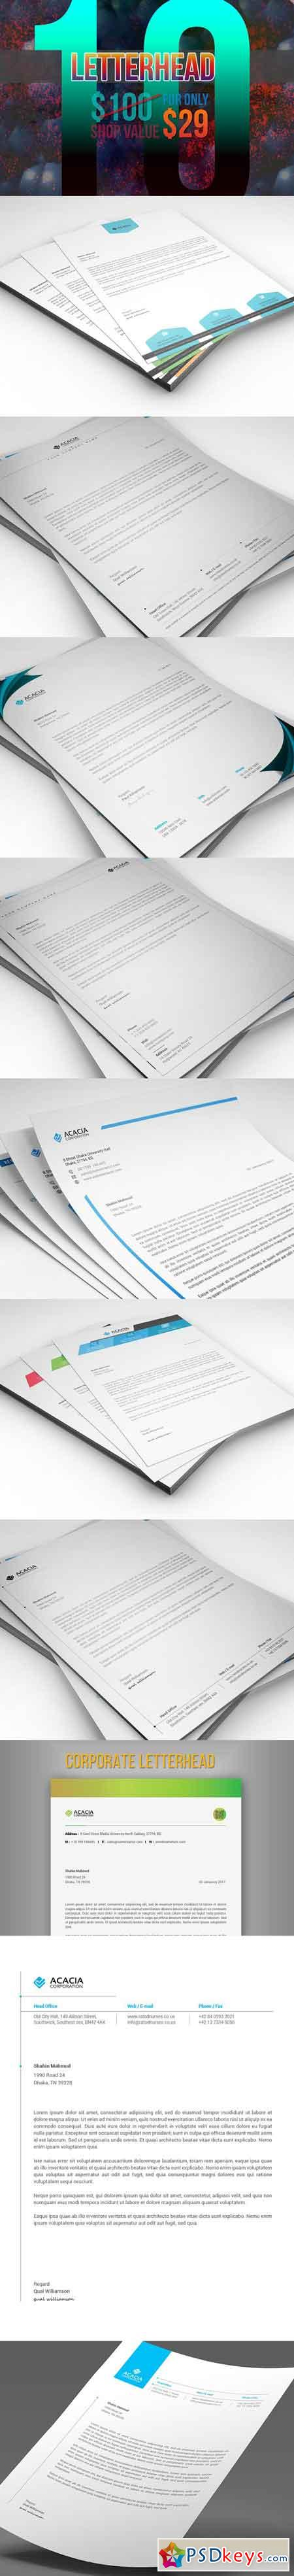 10 Letterheads (Bundle) Only $29 1766145